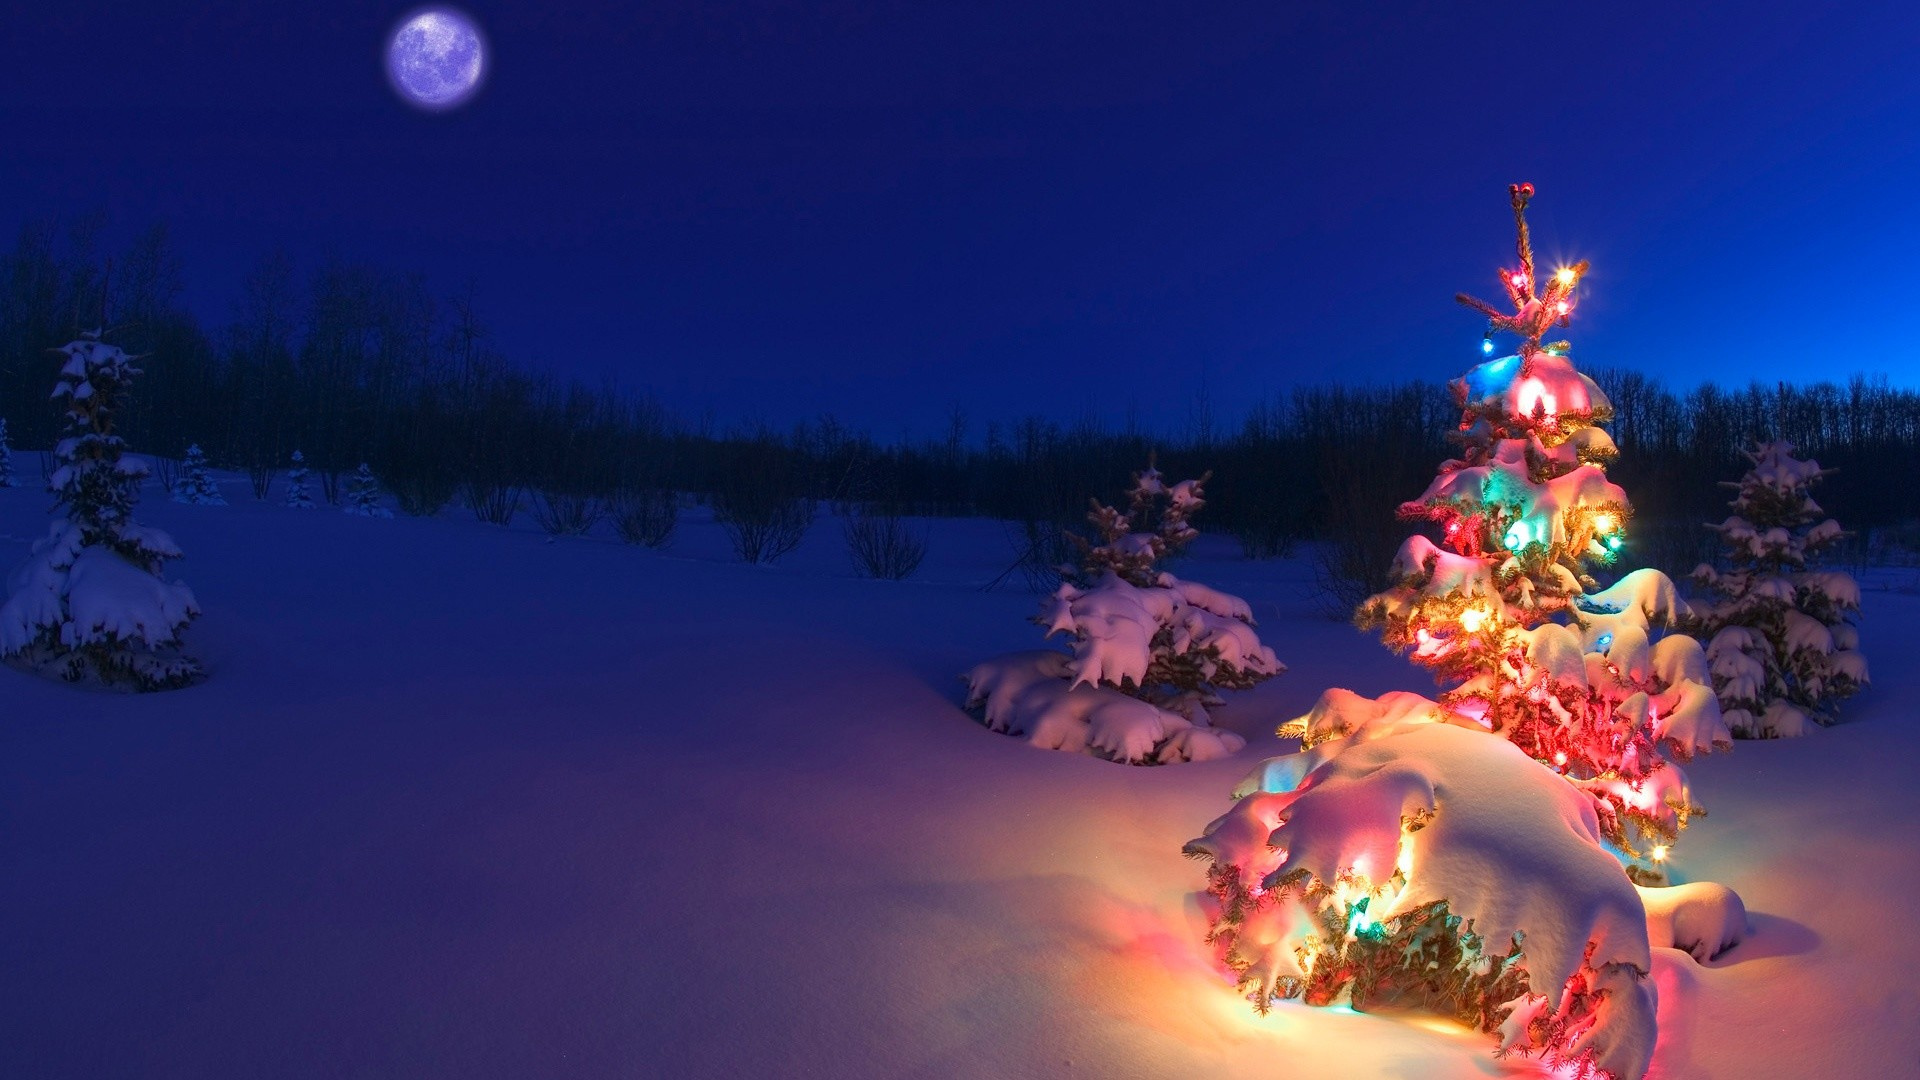 1920x1080 Download Merry Christmas HD Image · Merry Christmas hd Wallpapers ...